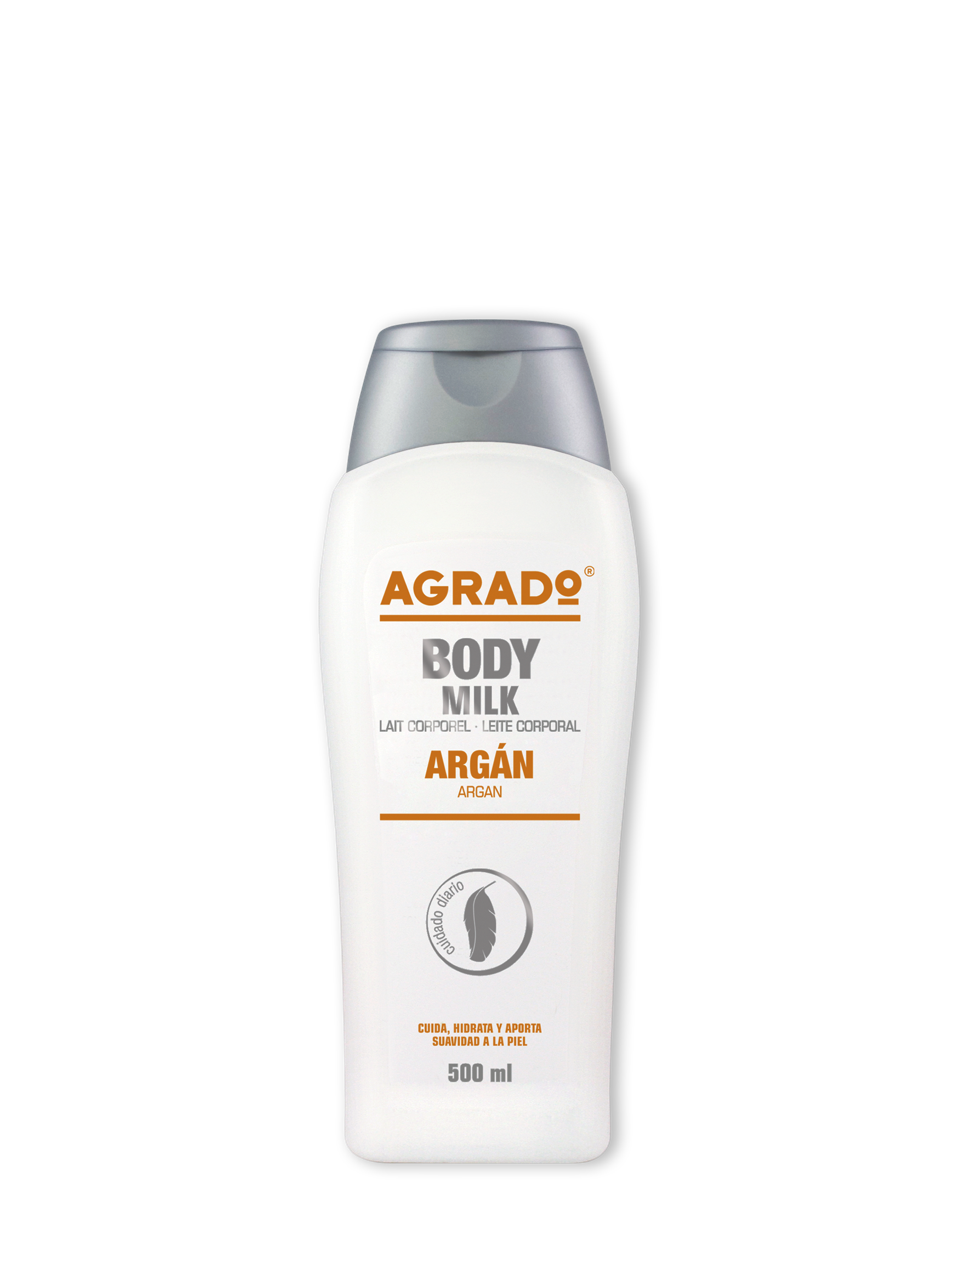 body-milk-argan-agrado-4833